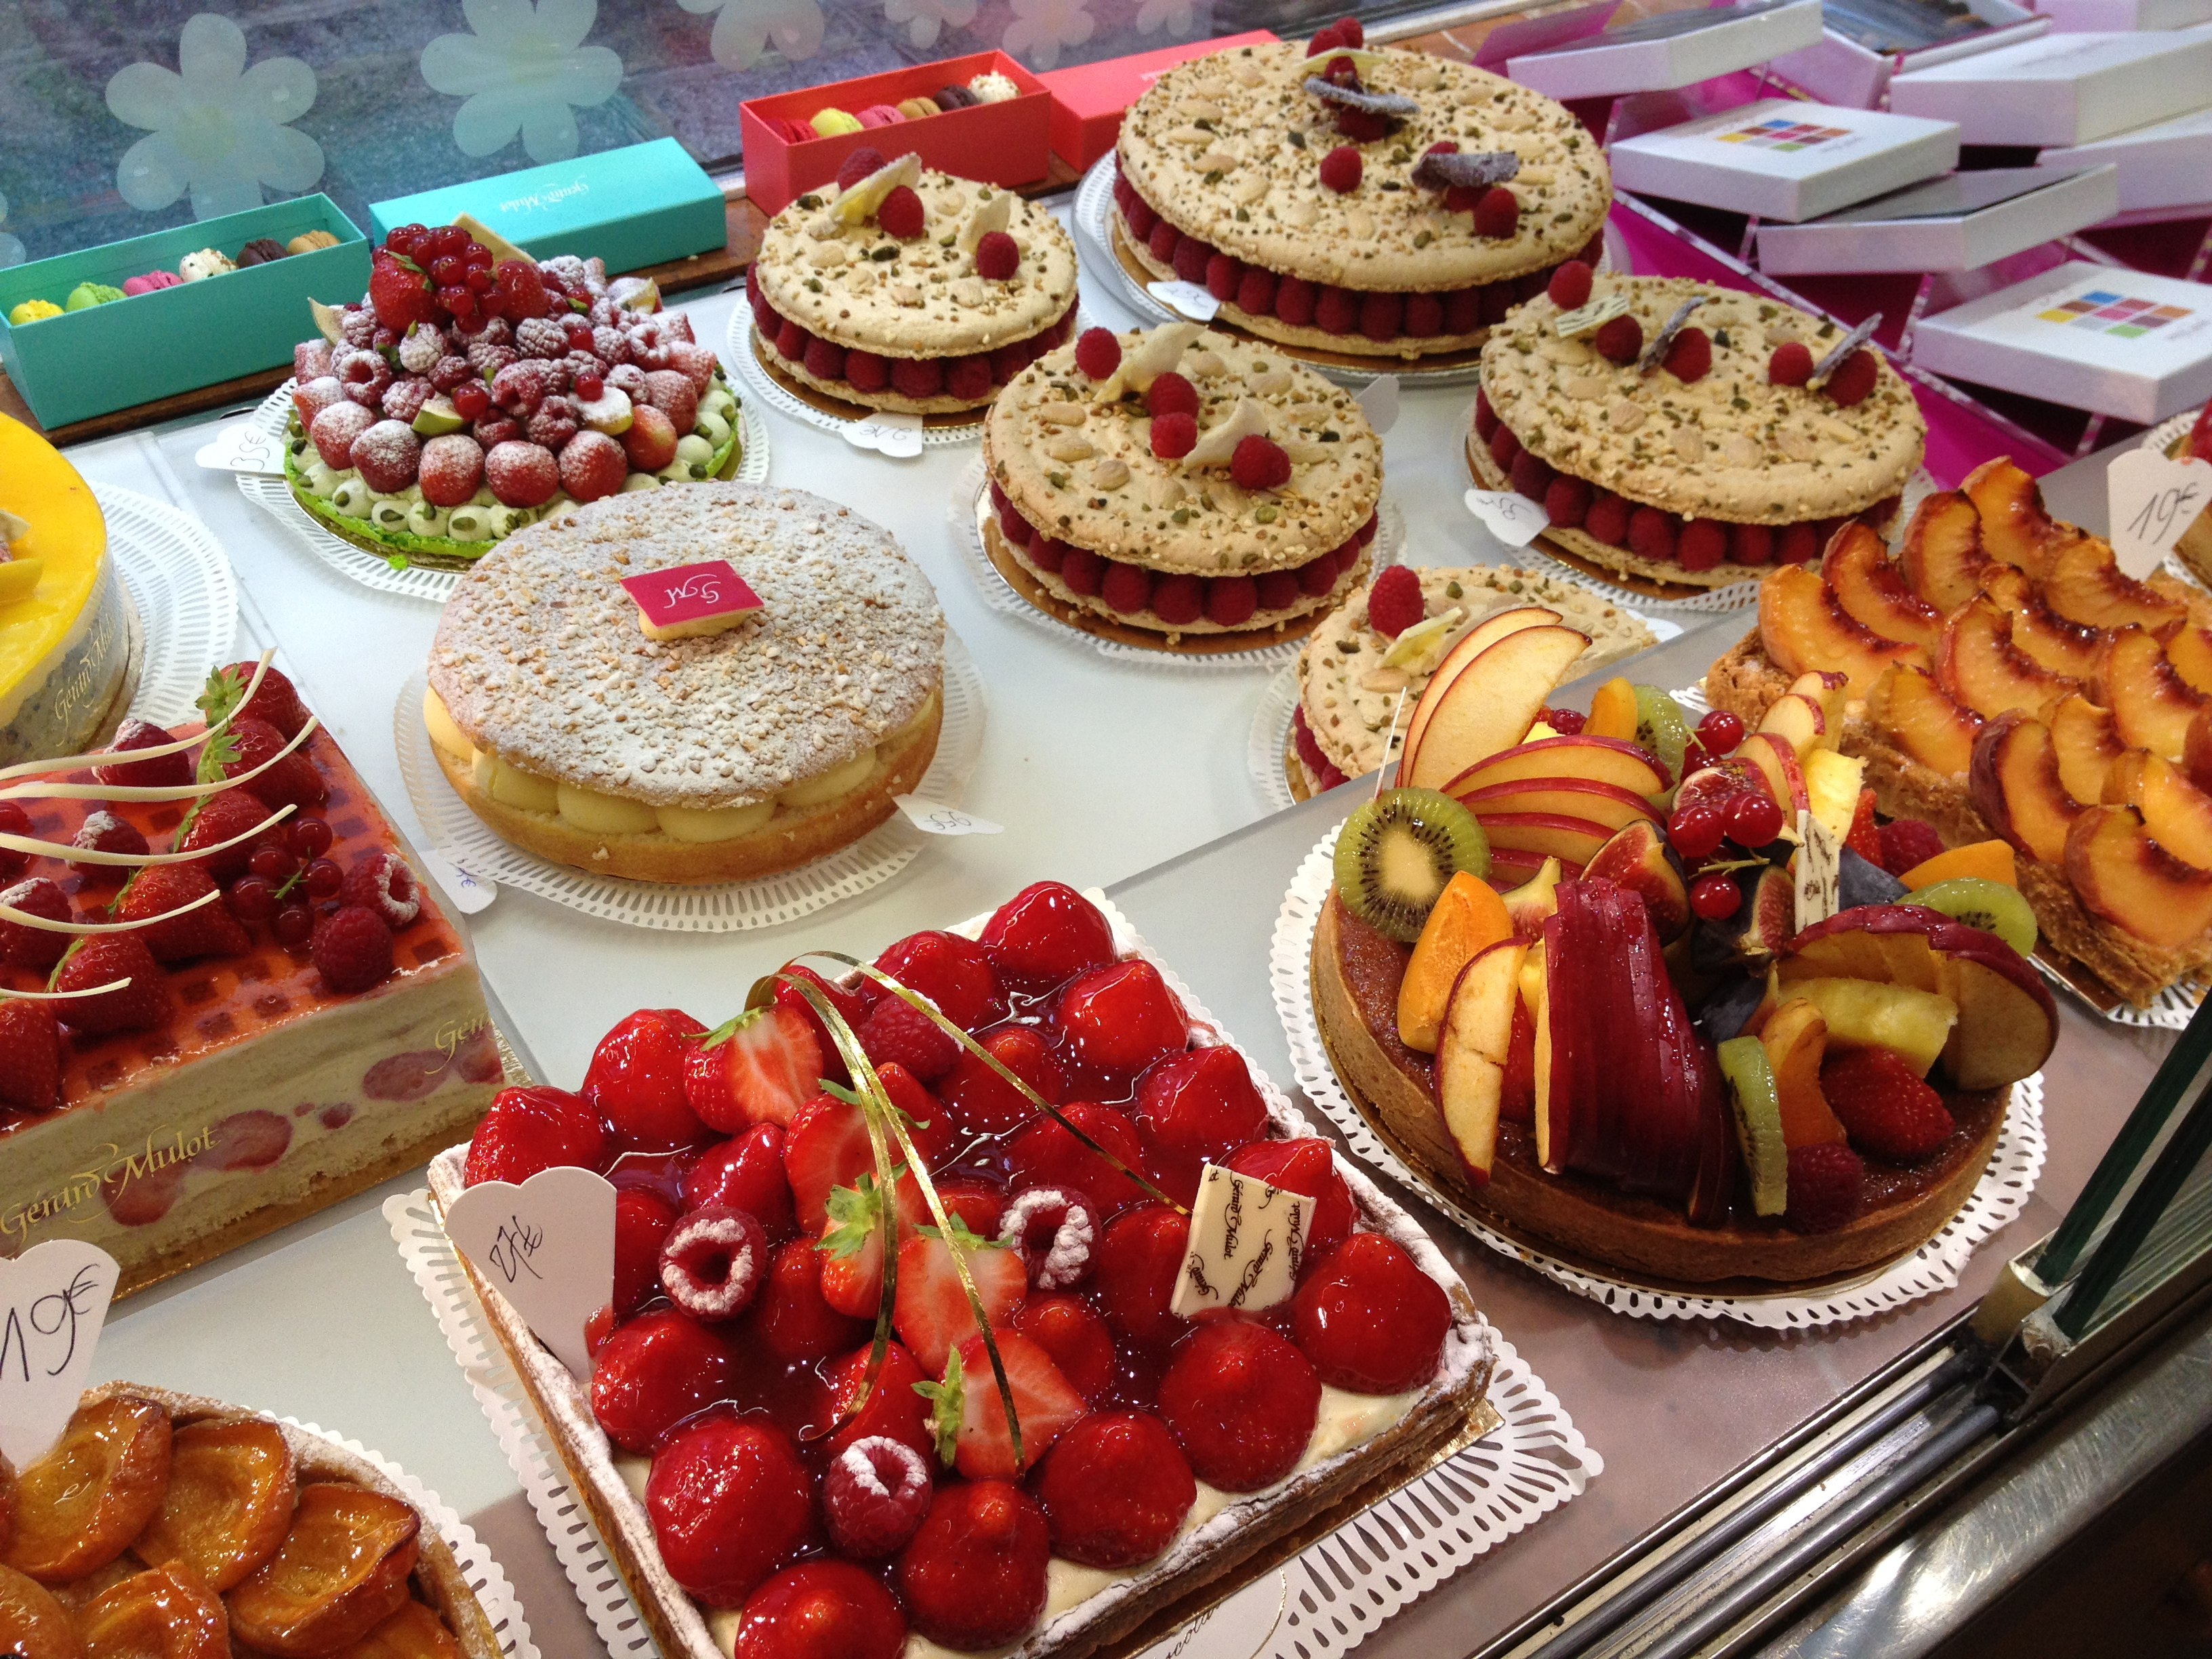 Gérard Mulot: a Parisian Pastry Prince in the heart of Saint